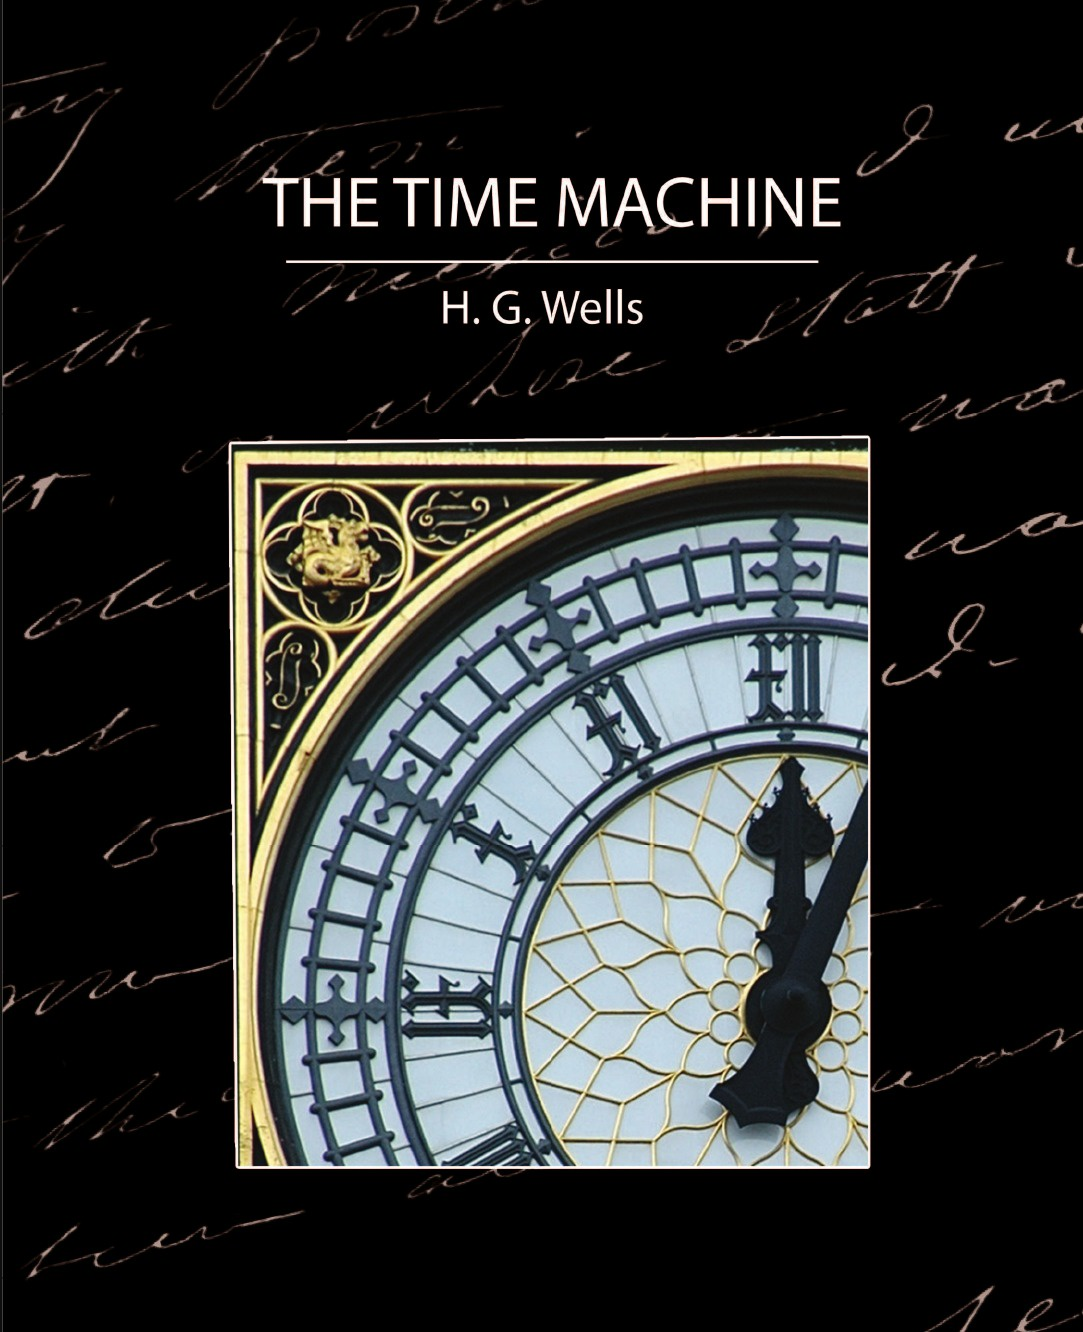 H. G. Wells, G. Wells H. G. Wells, H. G. Wells The Time Machine h g wells